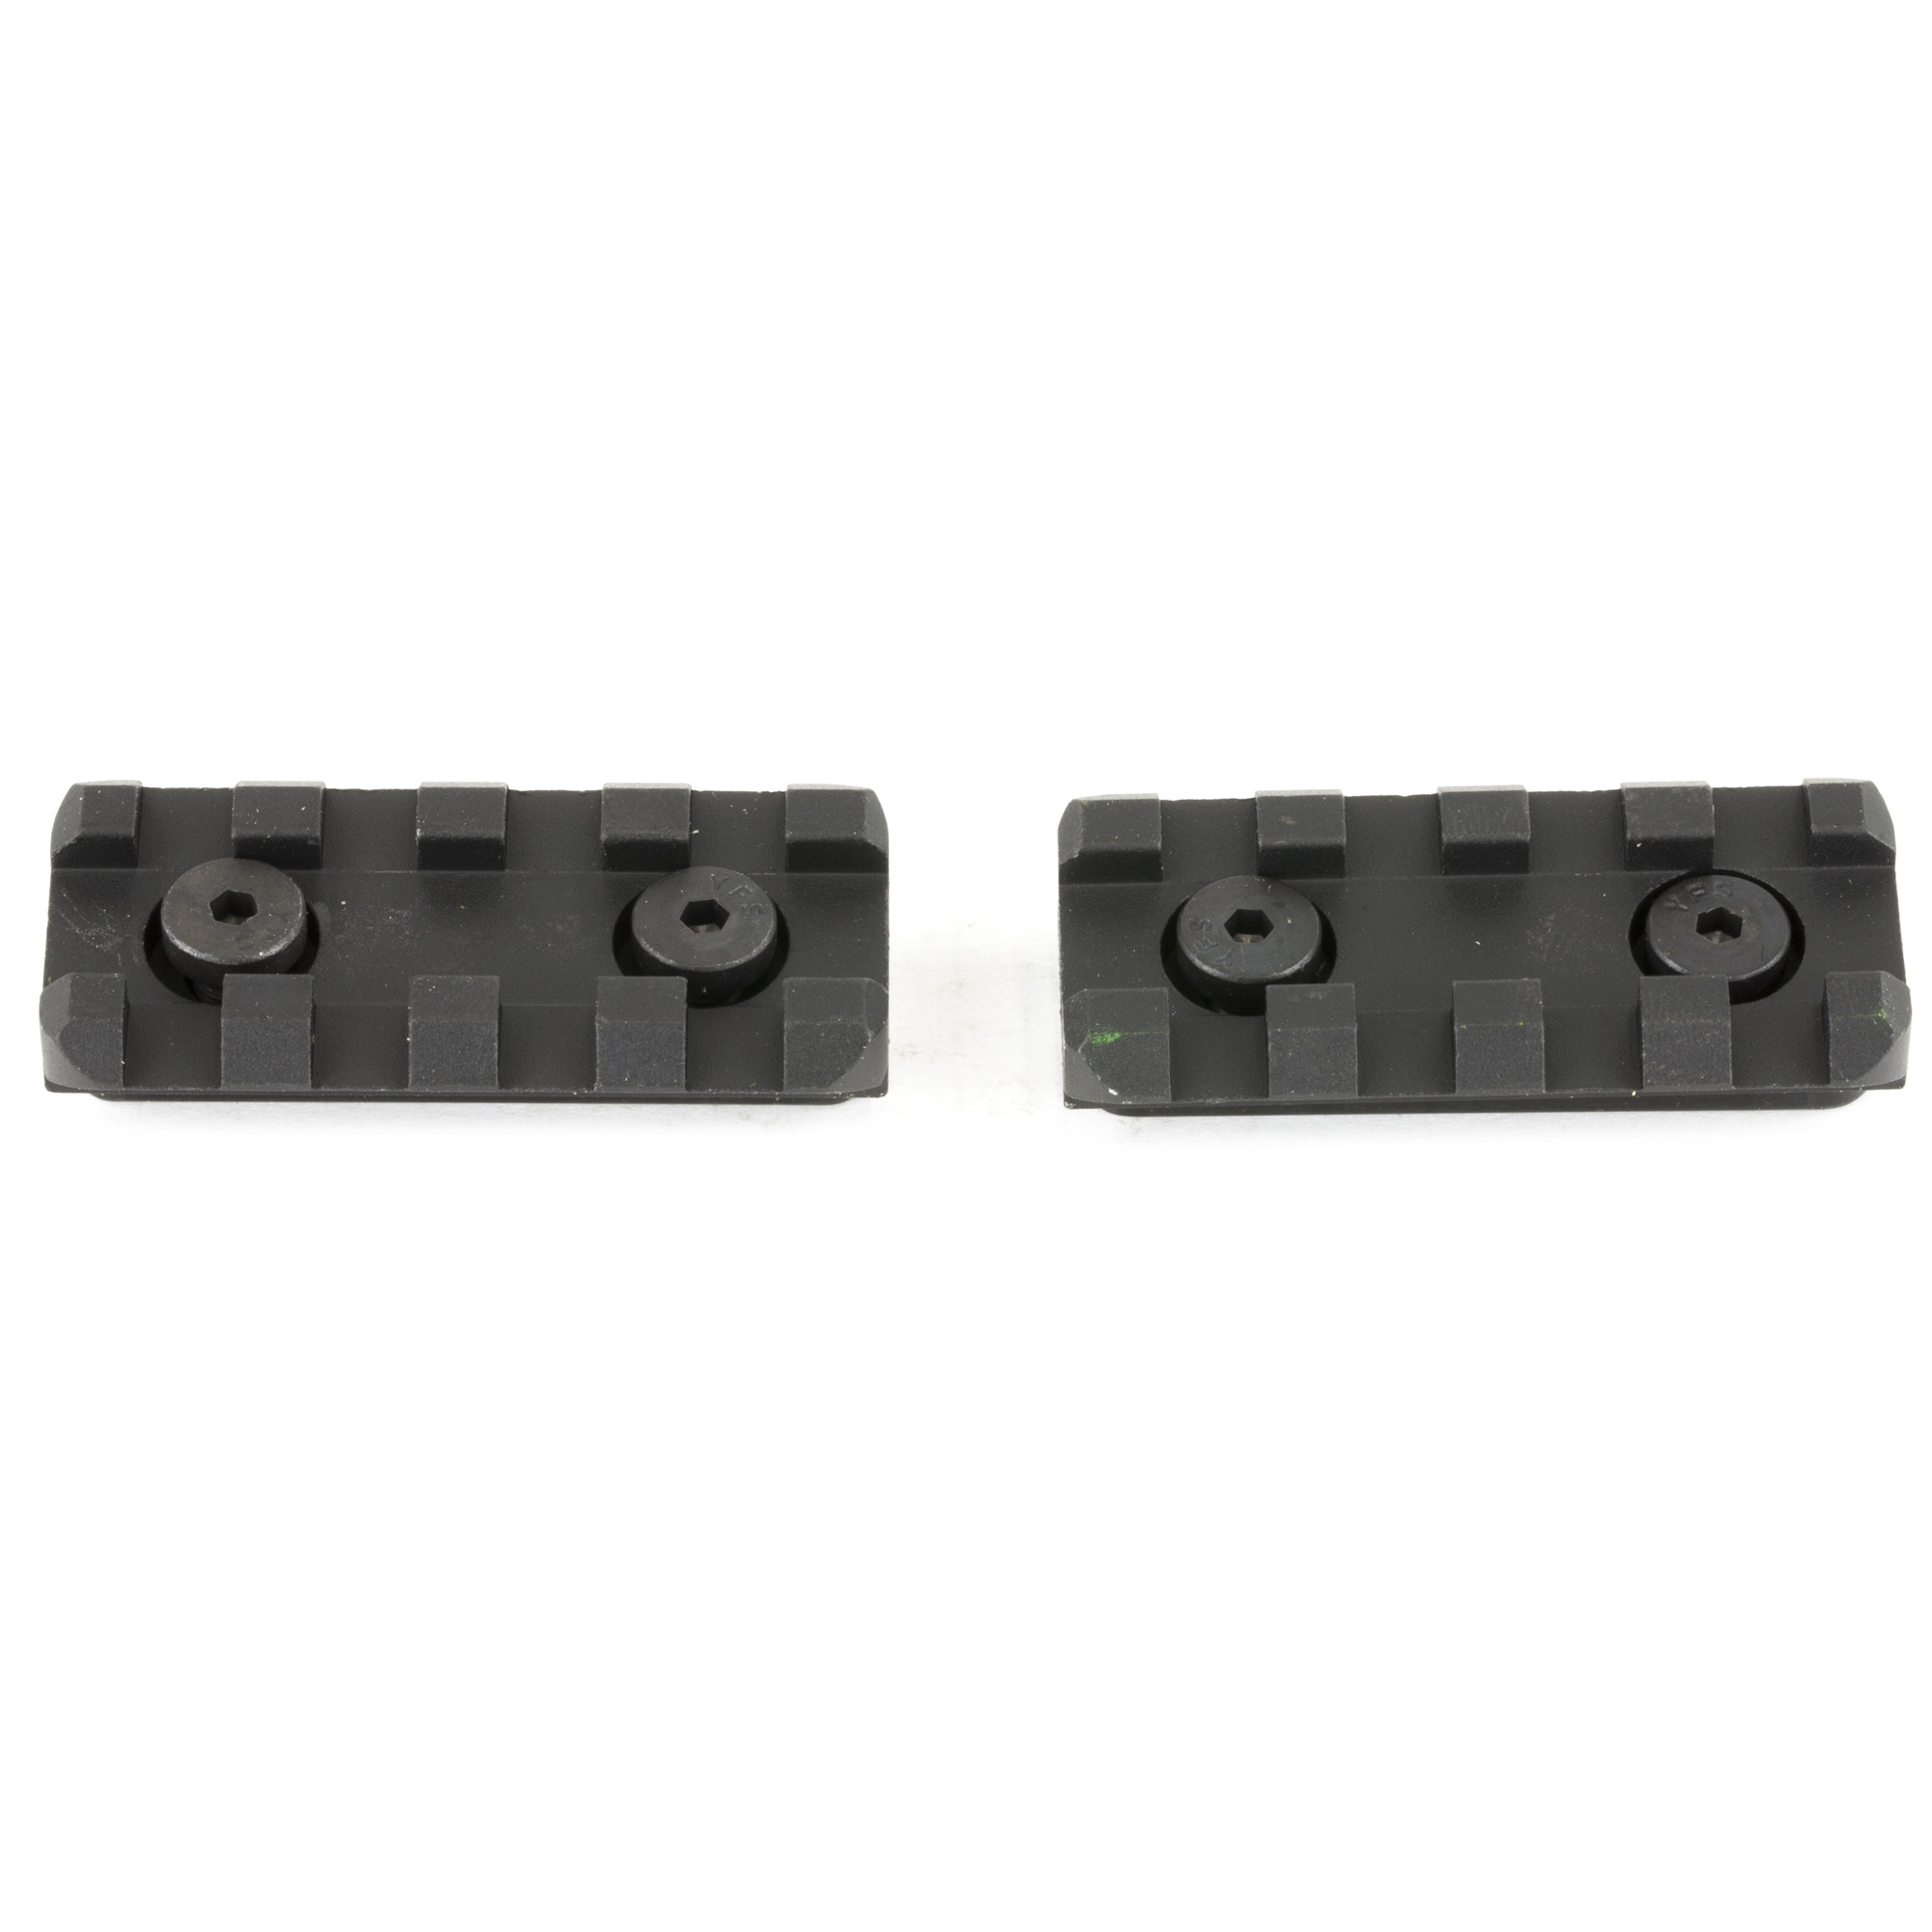 """Evolution accessory rails can be added or removed at any of 7 positions around the rail and any place along the length of the tube. Compatible with Evolution Series only and RTR Series. 2"""" Accessory rail kit includes two rails."""